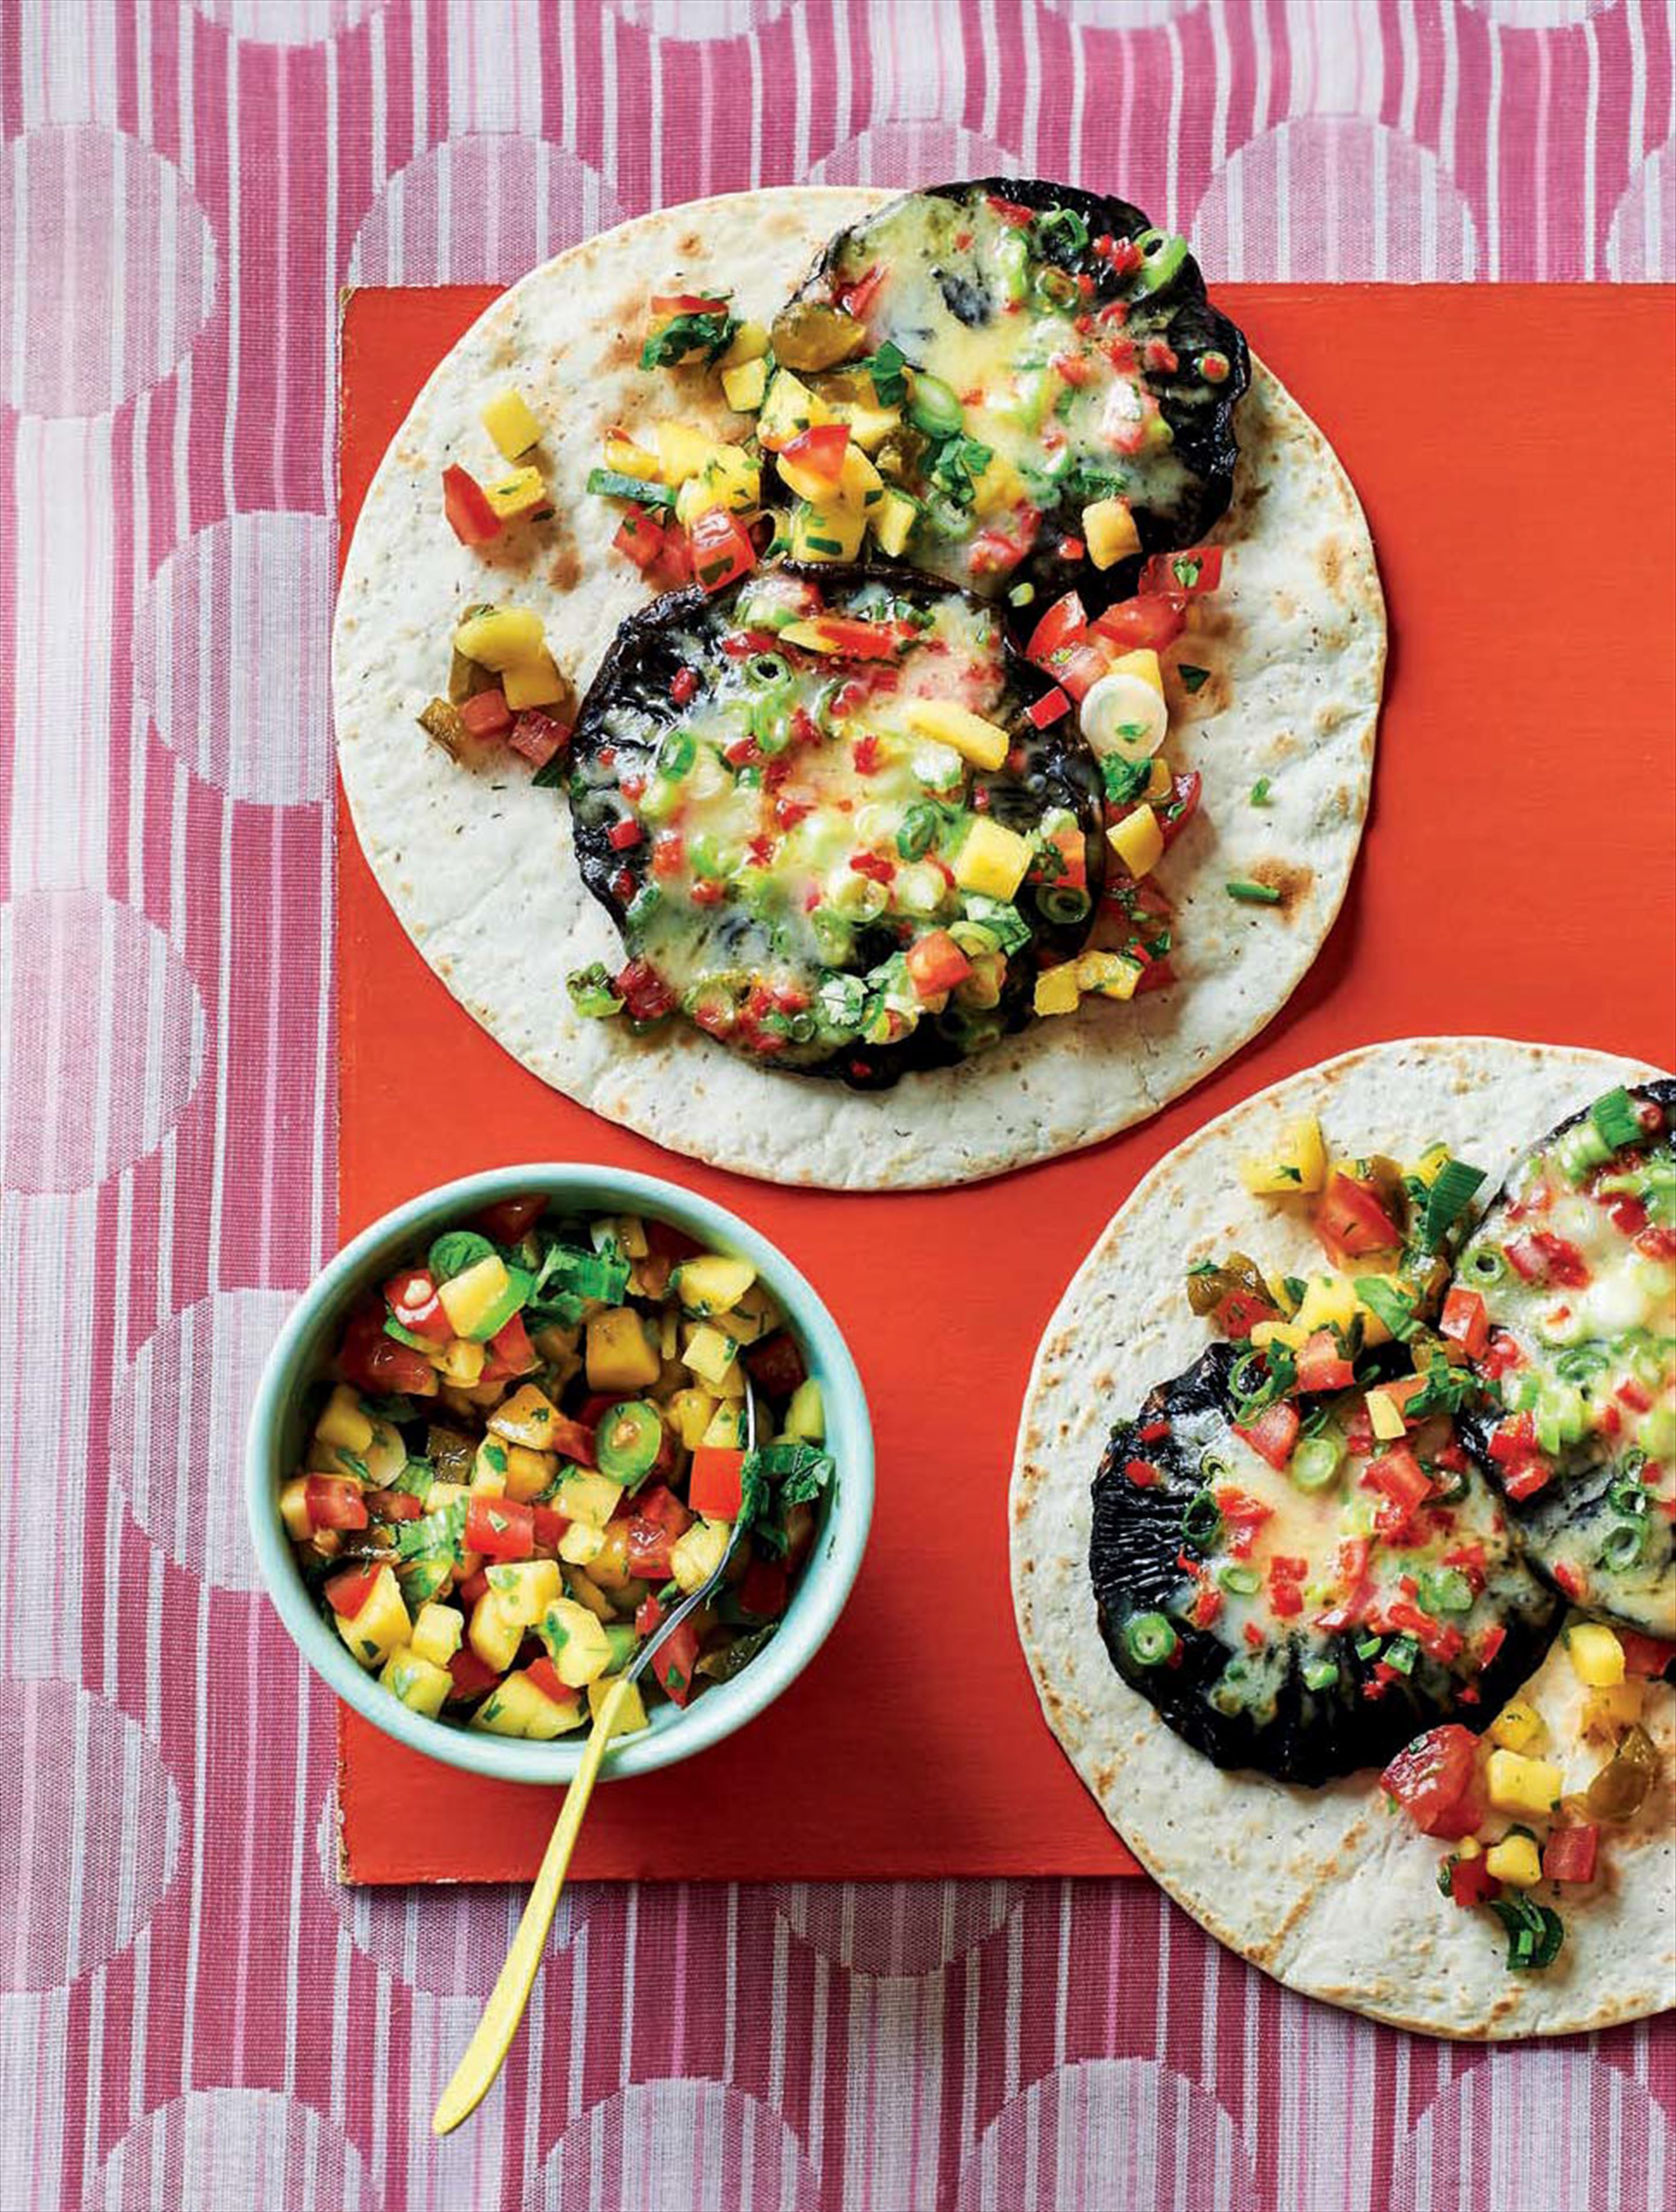 Chargrilled mushrooms & mango salsa